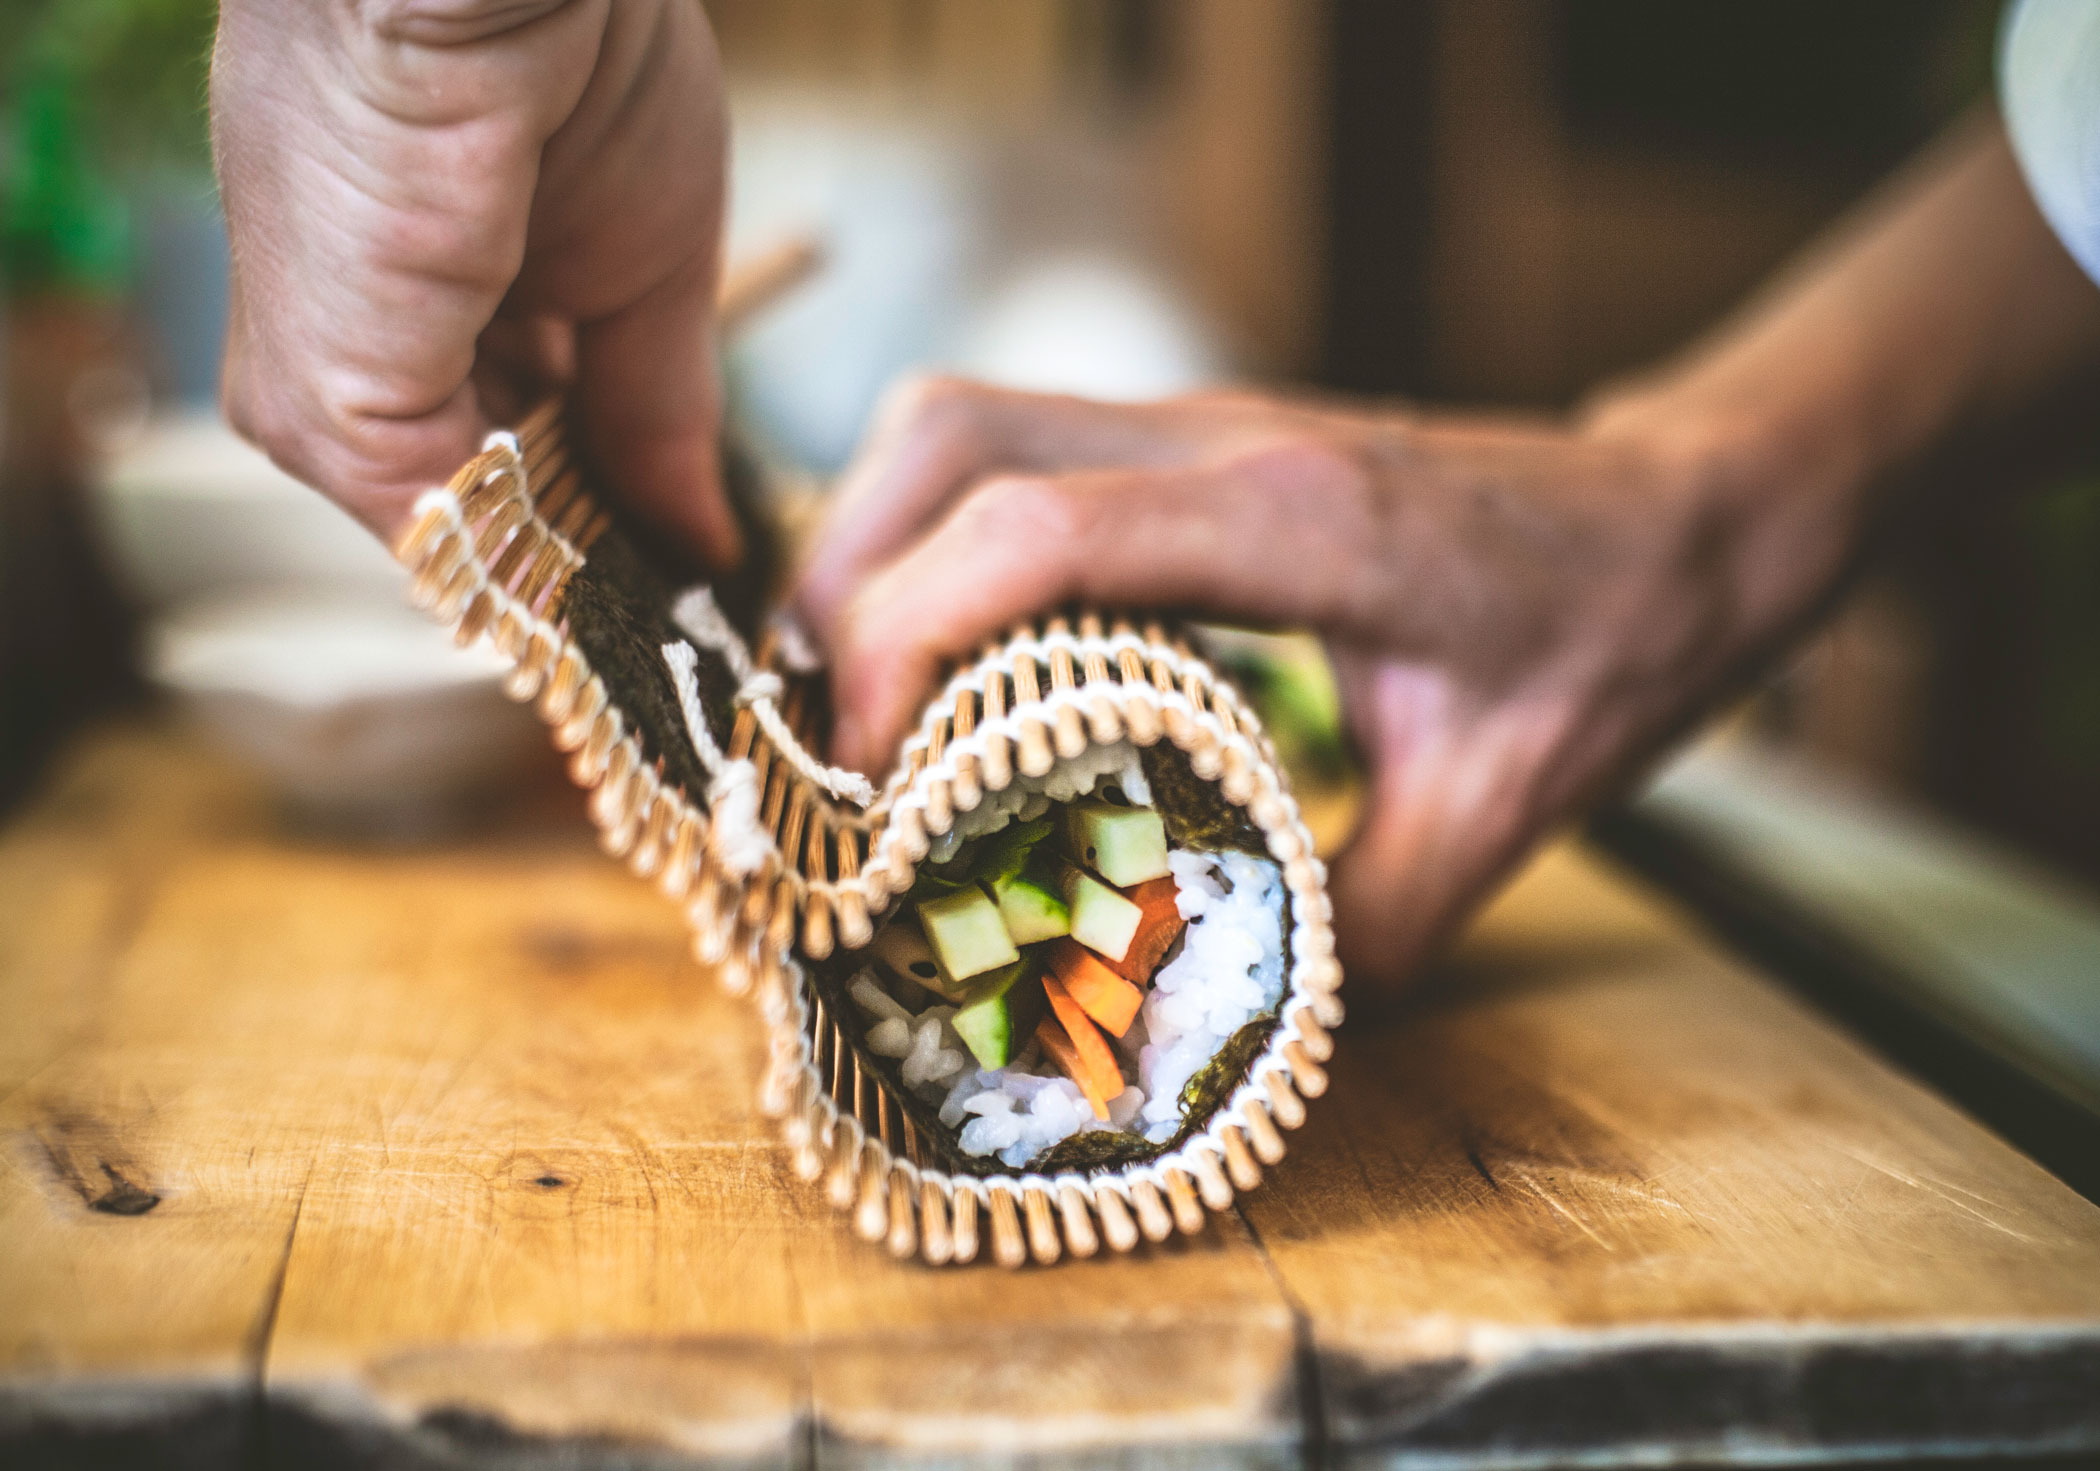 A person delicately rolling a whole roll of sushi with a bamboo rolling mat.